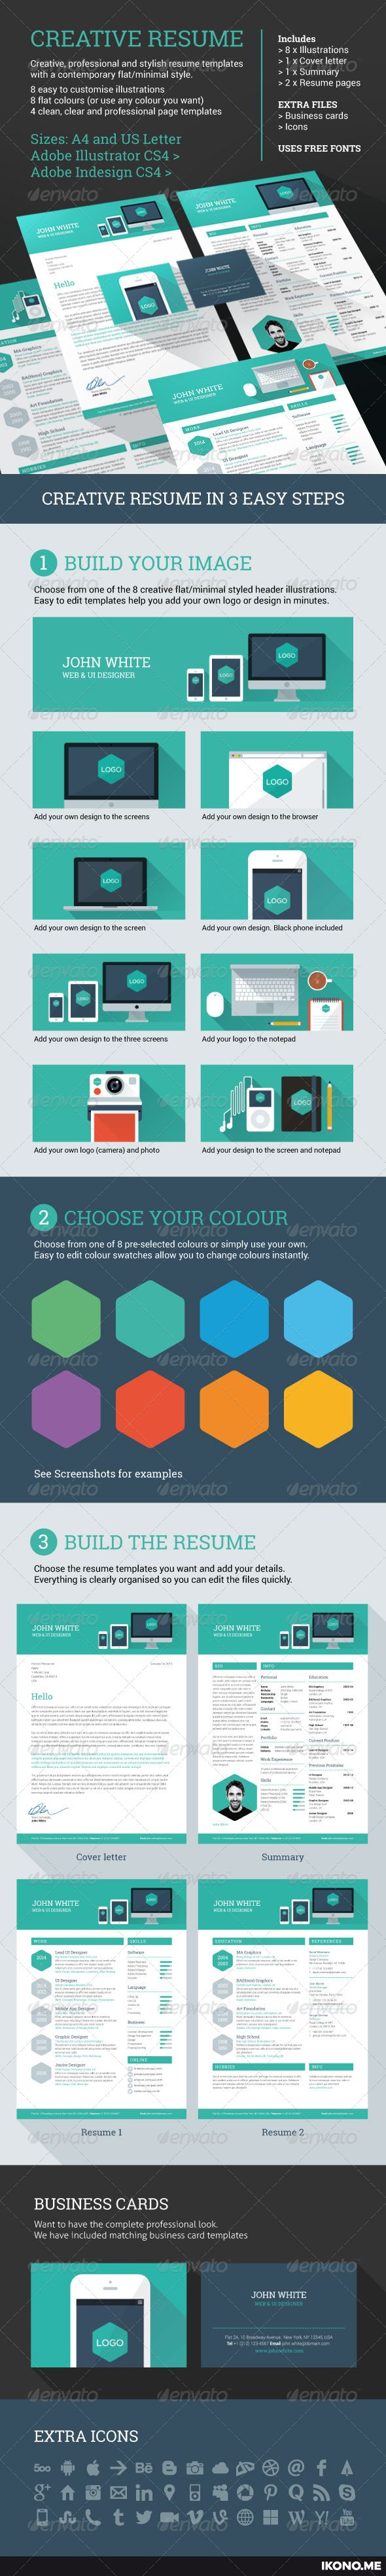 28 best images about resume tips  u0026 creative designs on